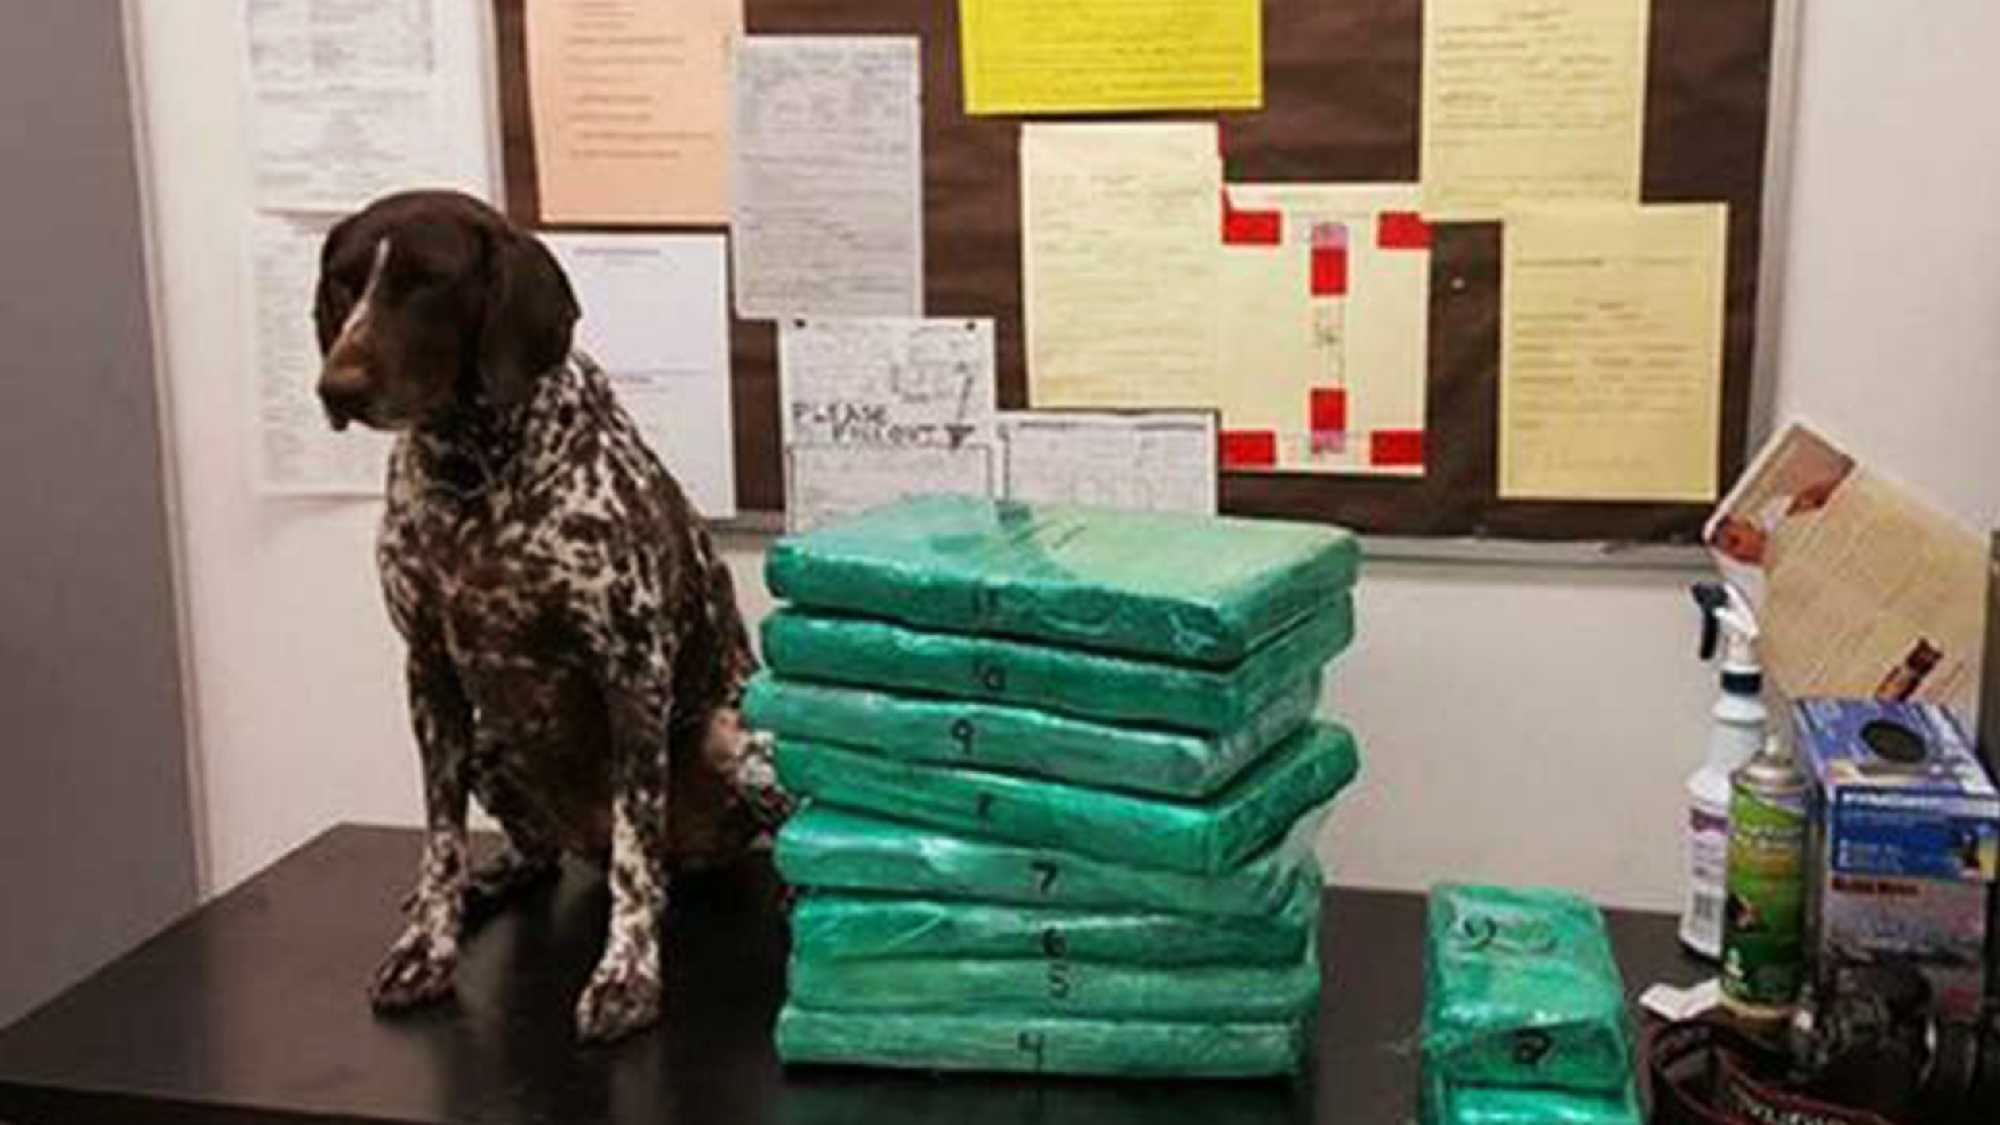 Cocaine is stacked next to a dog.